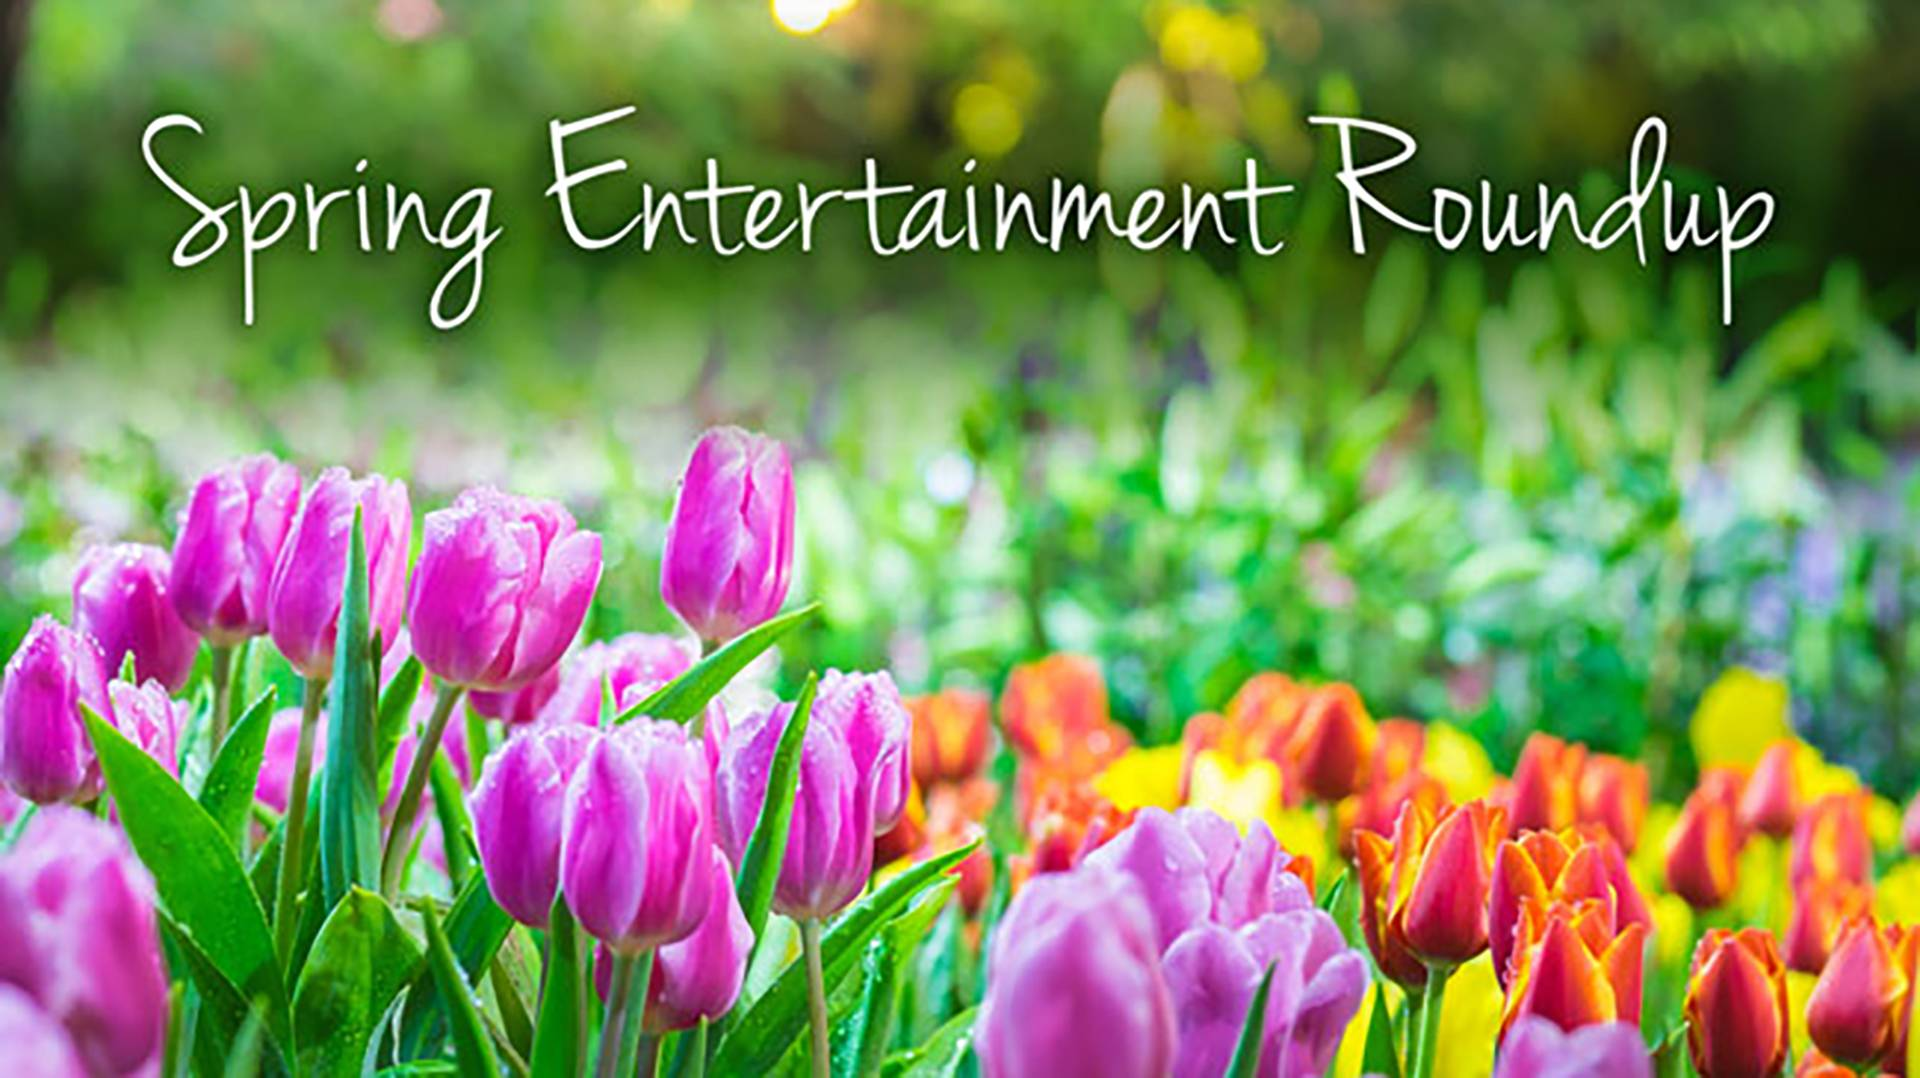 Spring Entertainment Preview